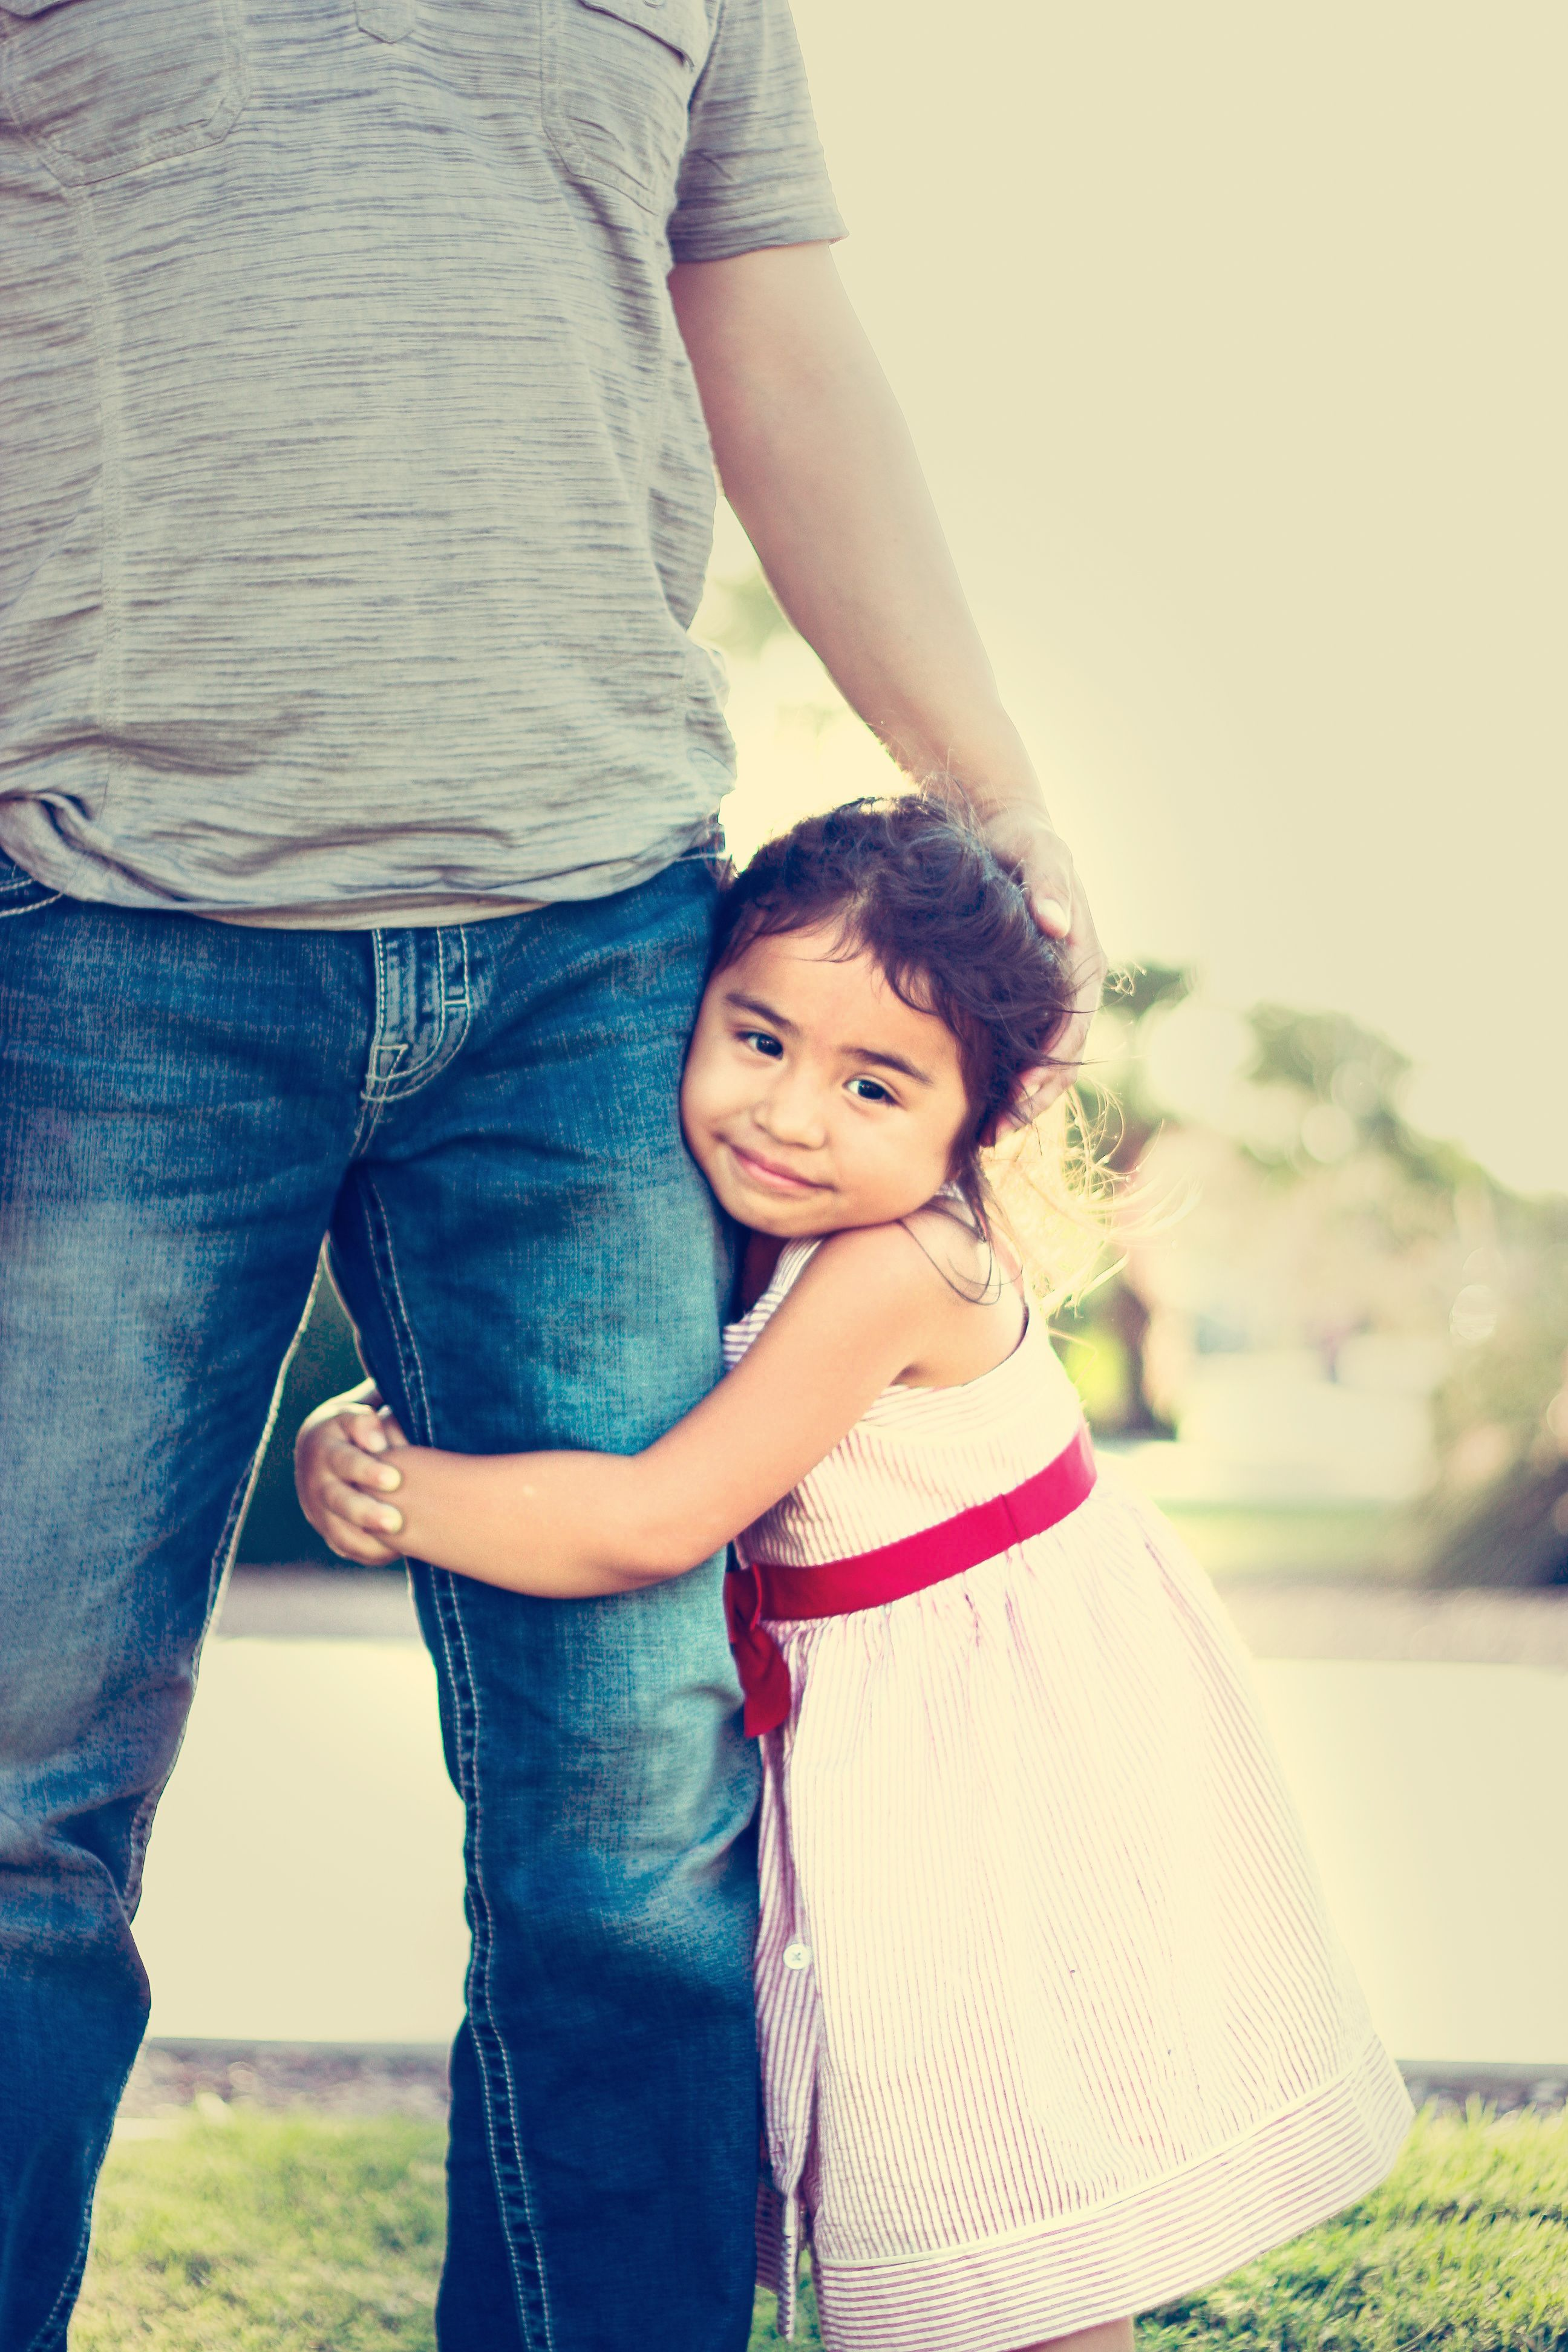 Closeness Dad Daughter Dad Son And Dads - Mother captures childhood joy photographs daughter